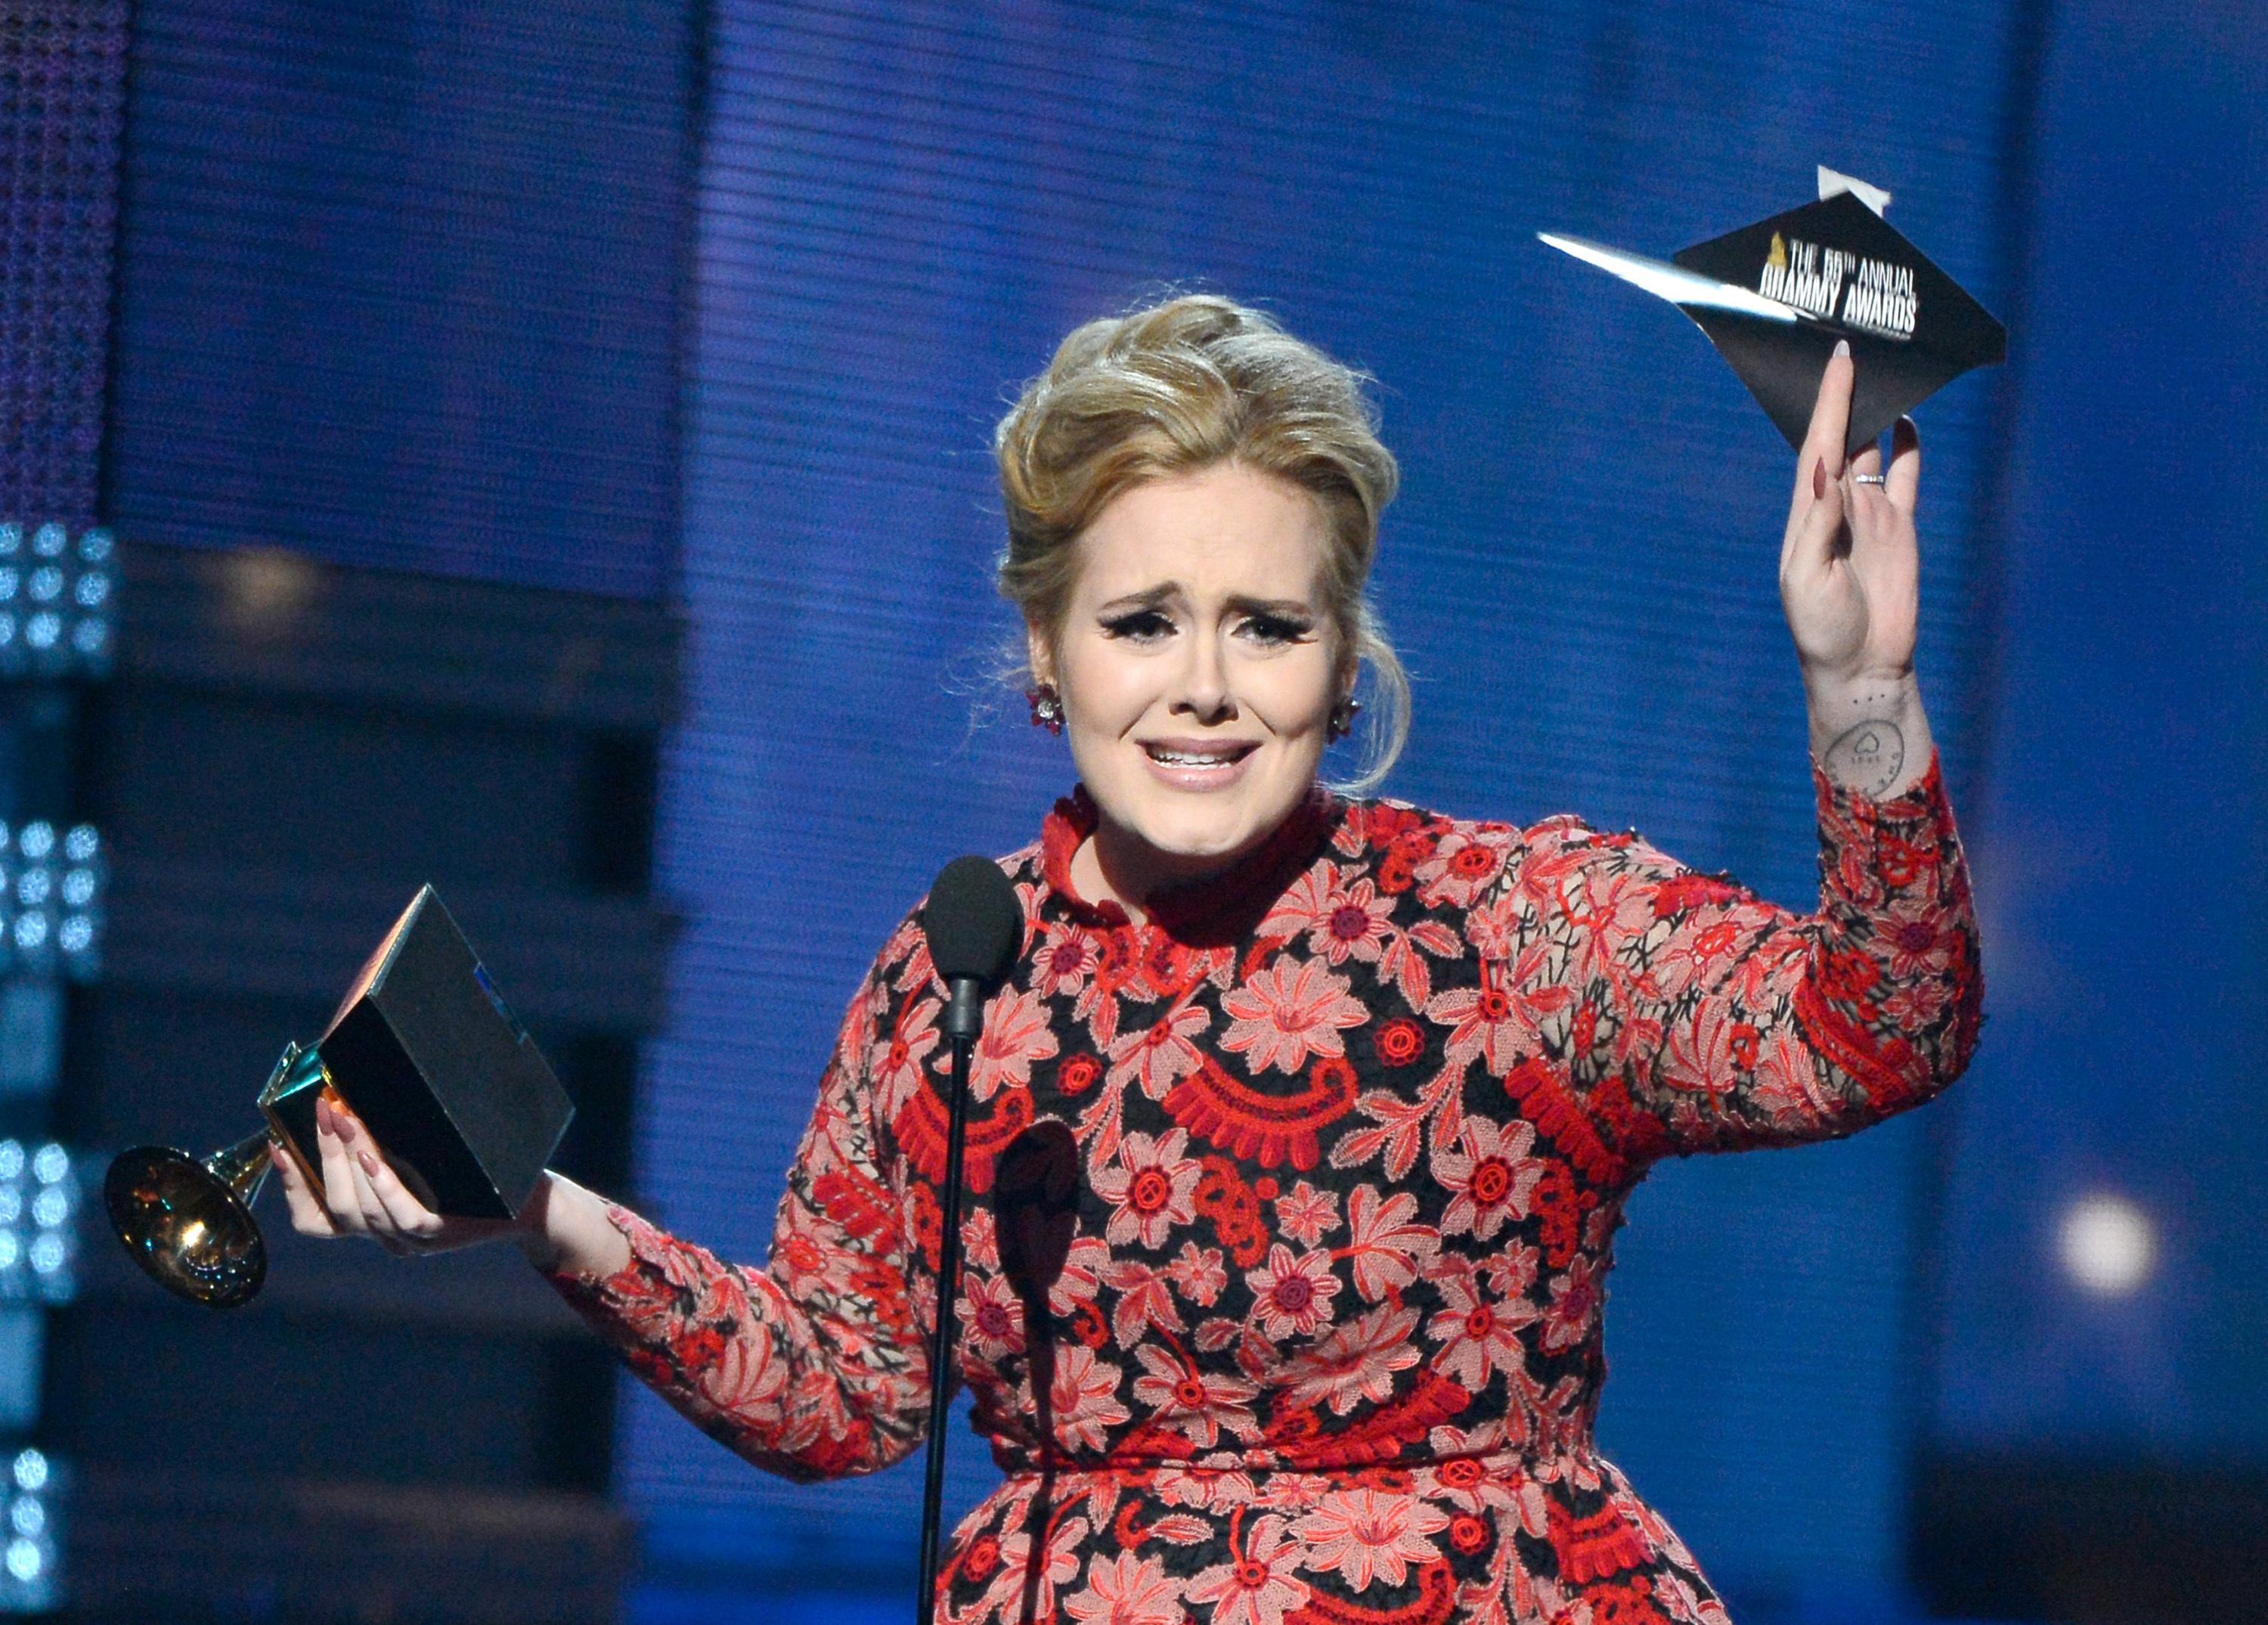 Adele accepts the Grammy for Best Pop Solo Performance for Set Fire to the Rain (Live).